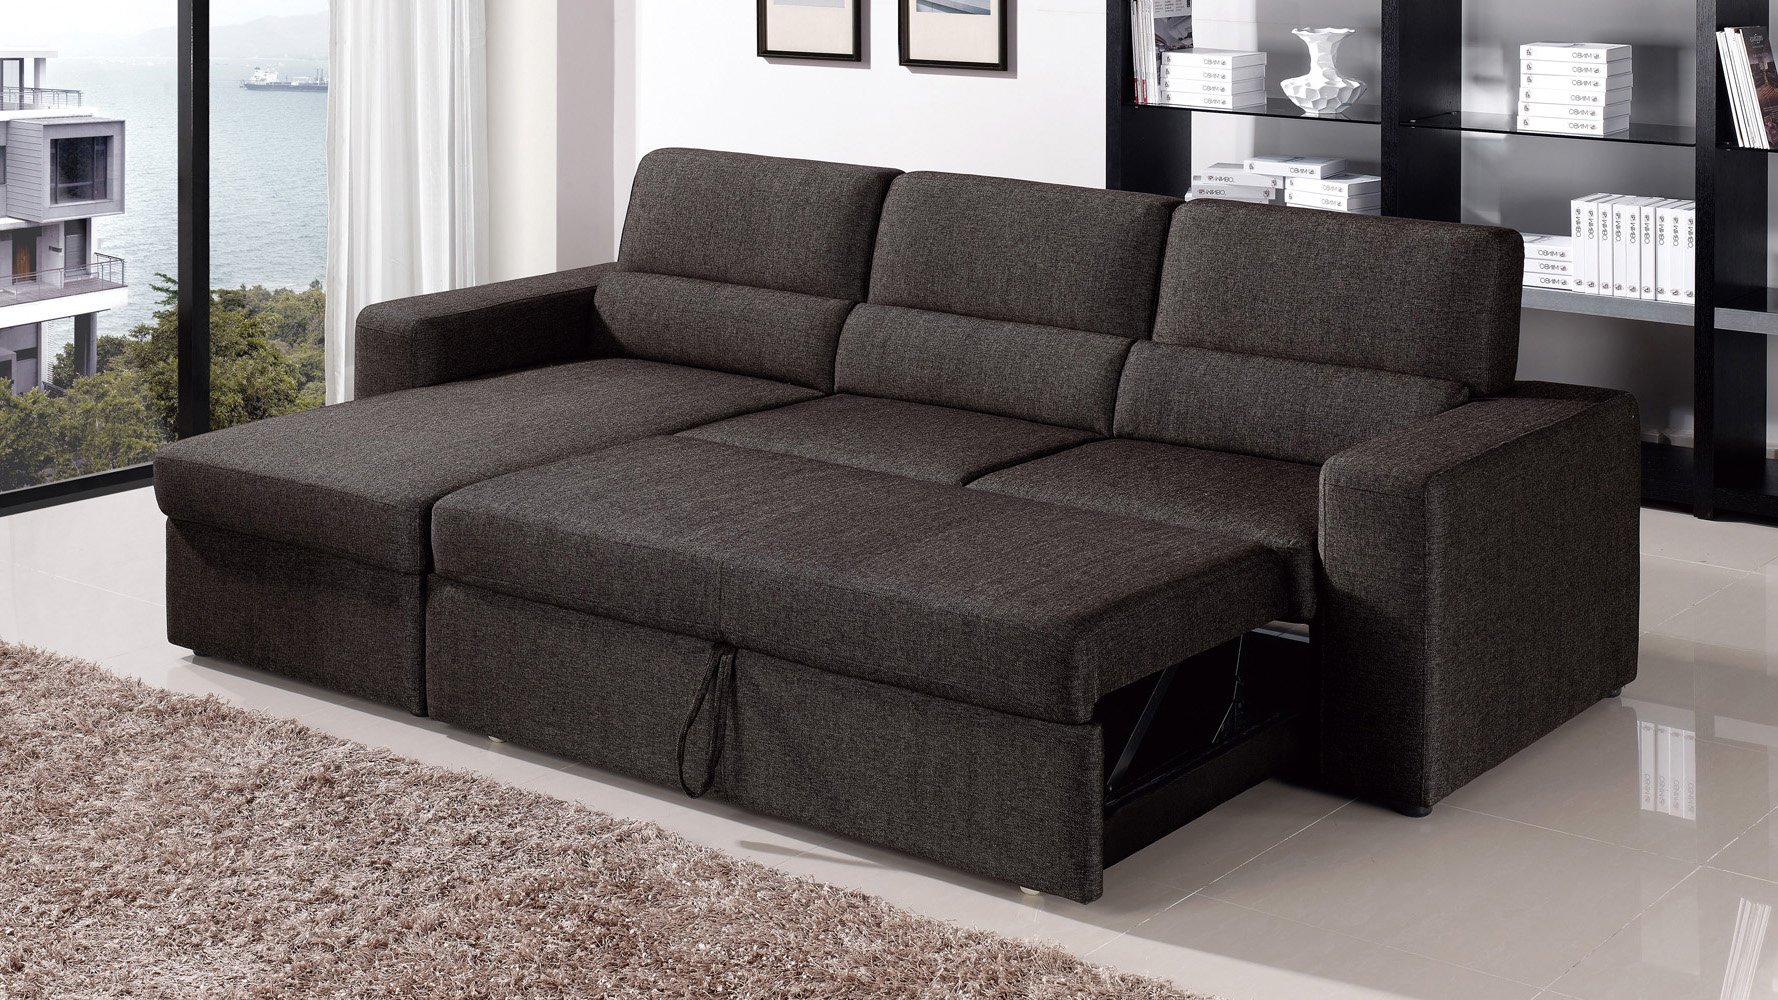 Clubber Sleeper ... : sleeper sofas with chaise - Sectionals, Sofas & Couches